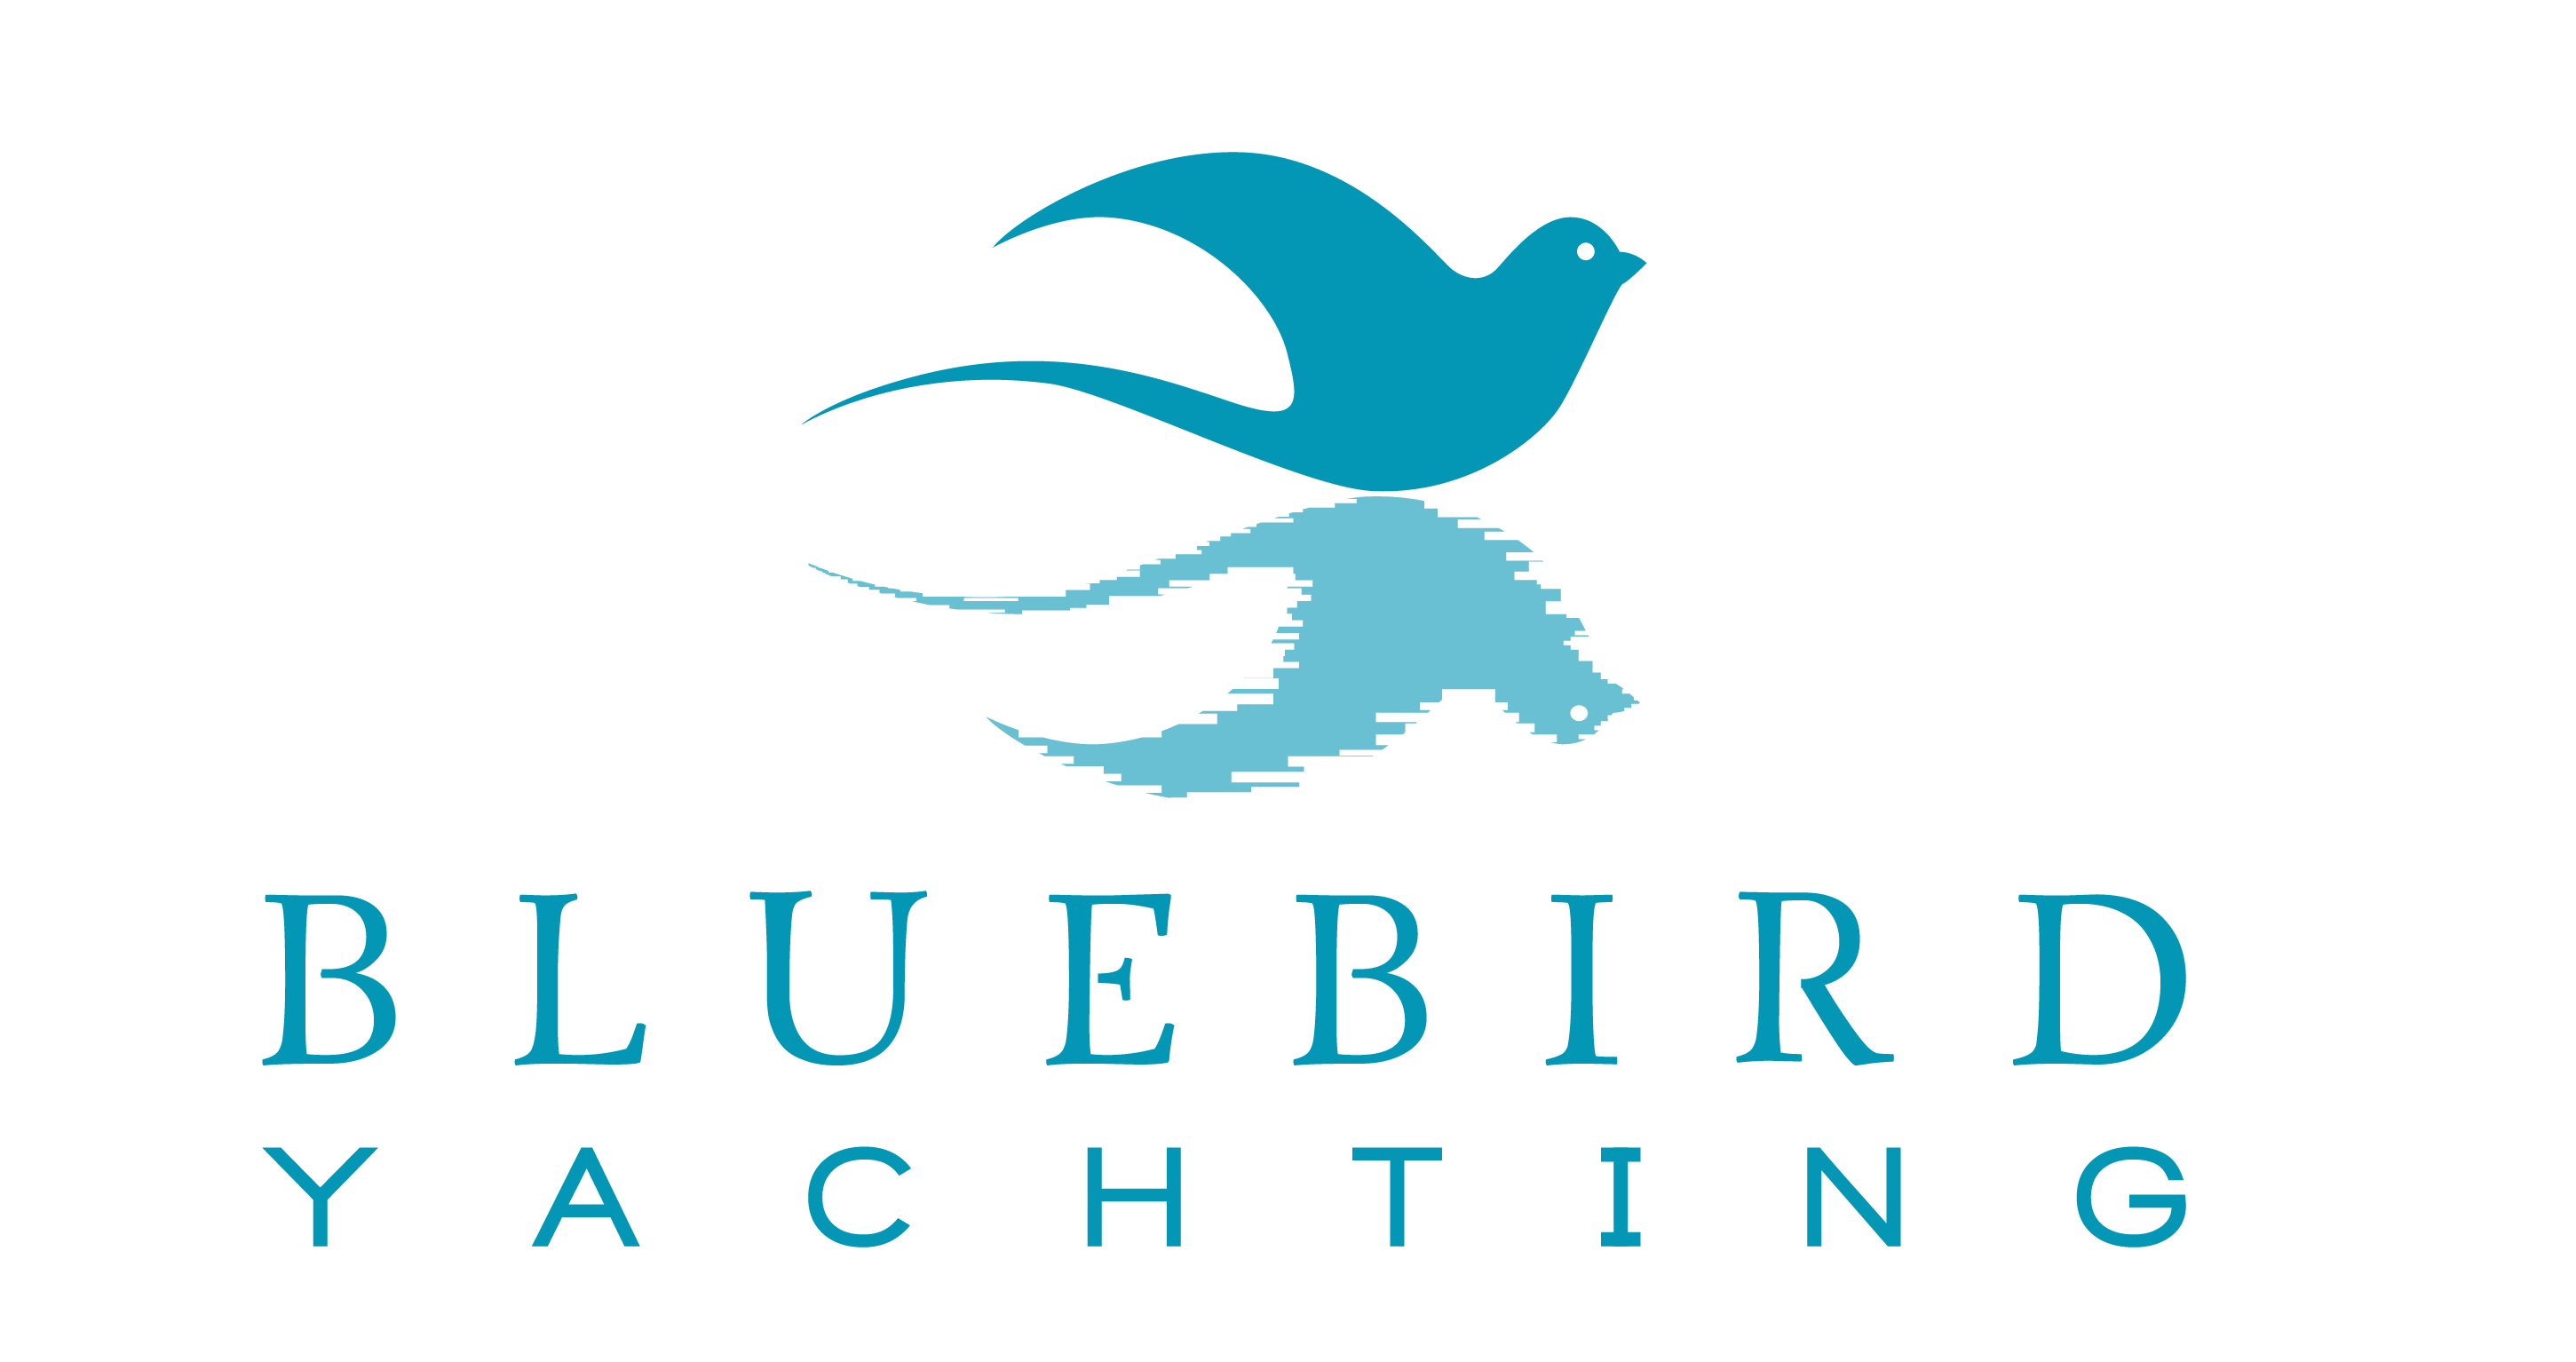 Bluebird Yachting | Tuscany | Bluebird Yachting